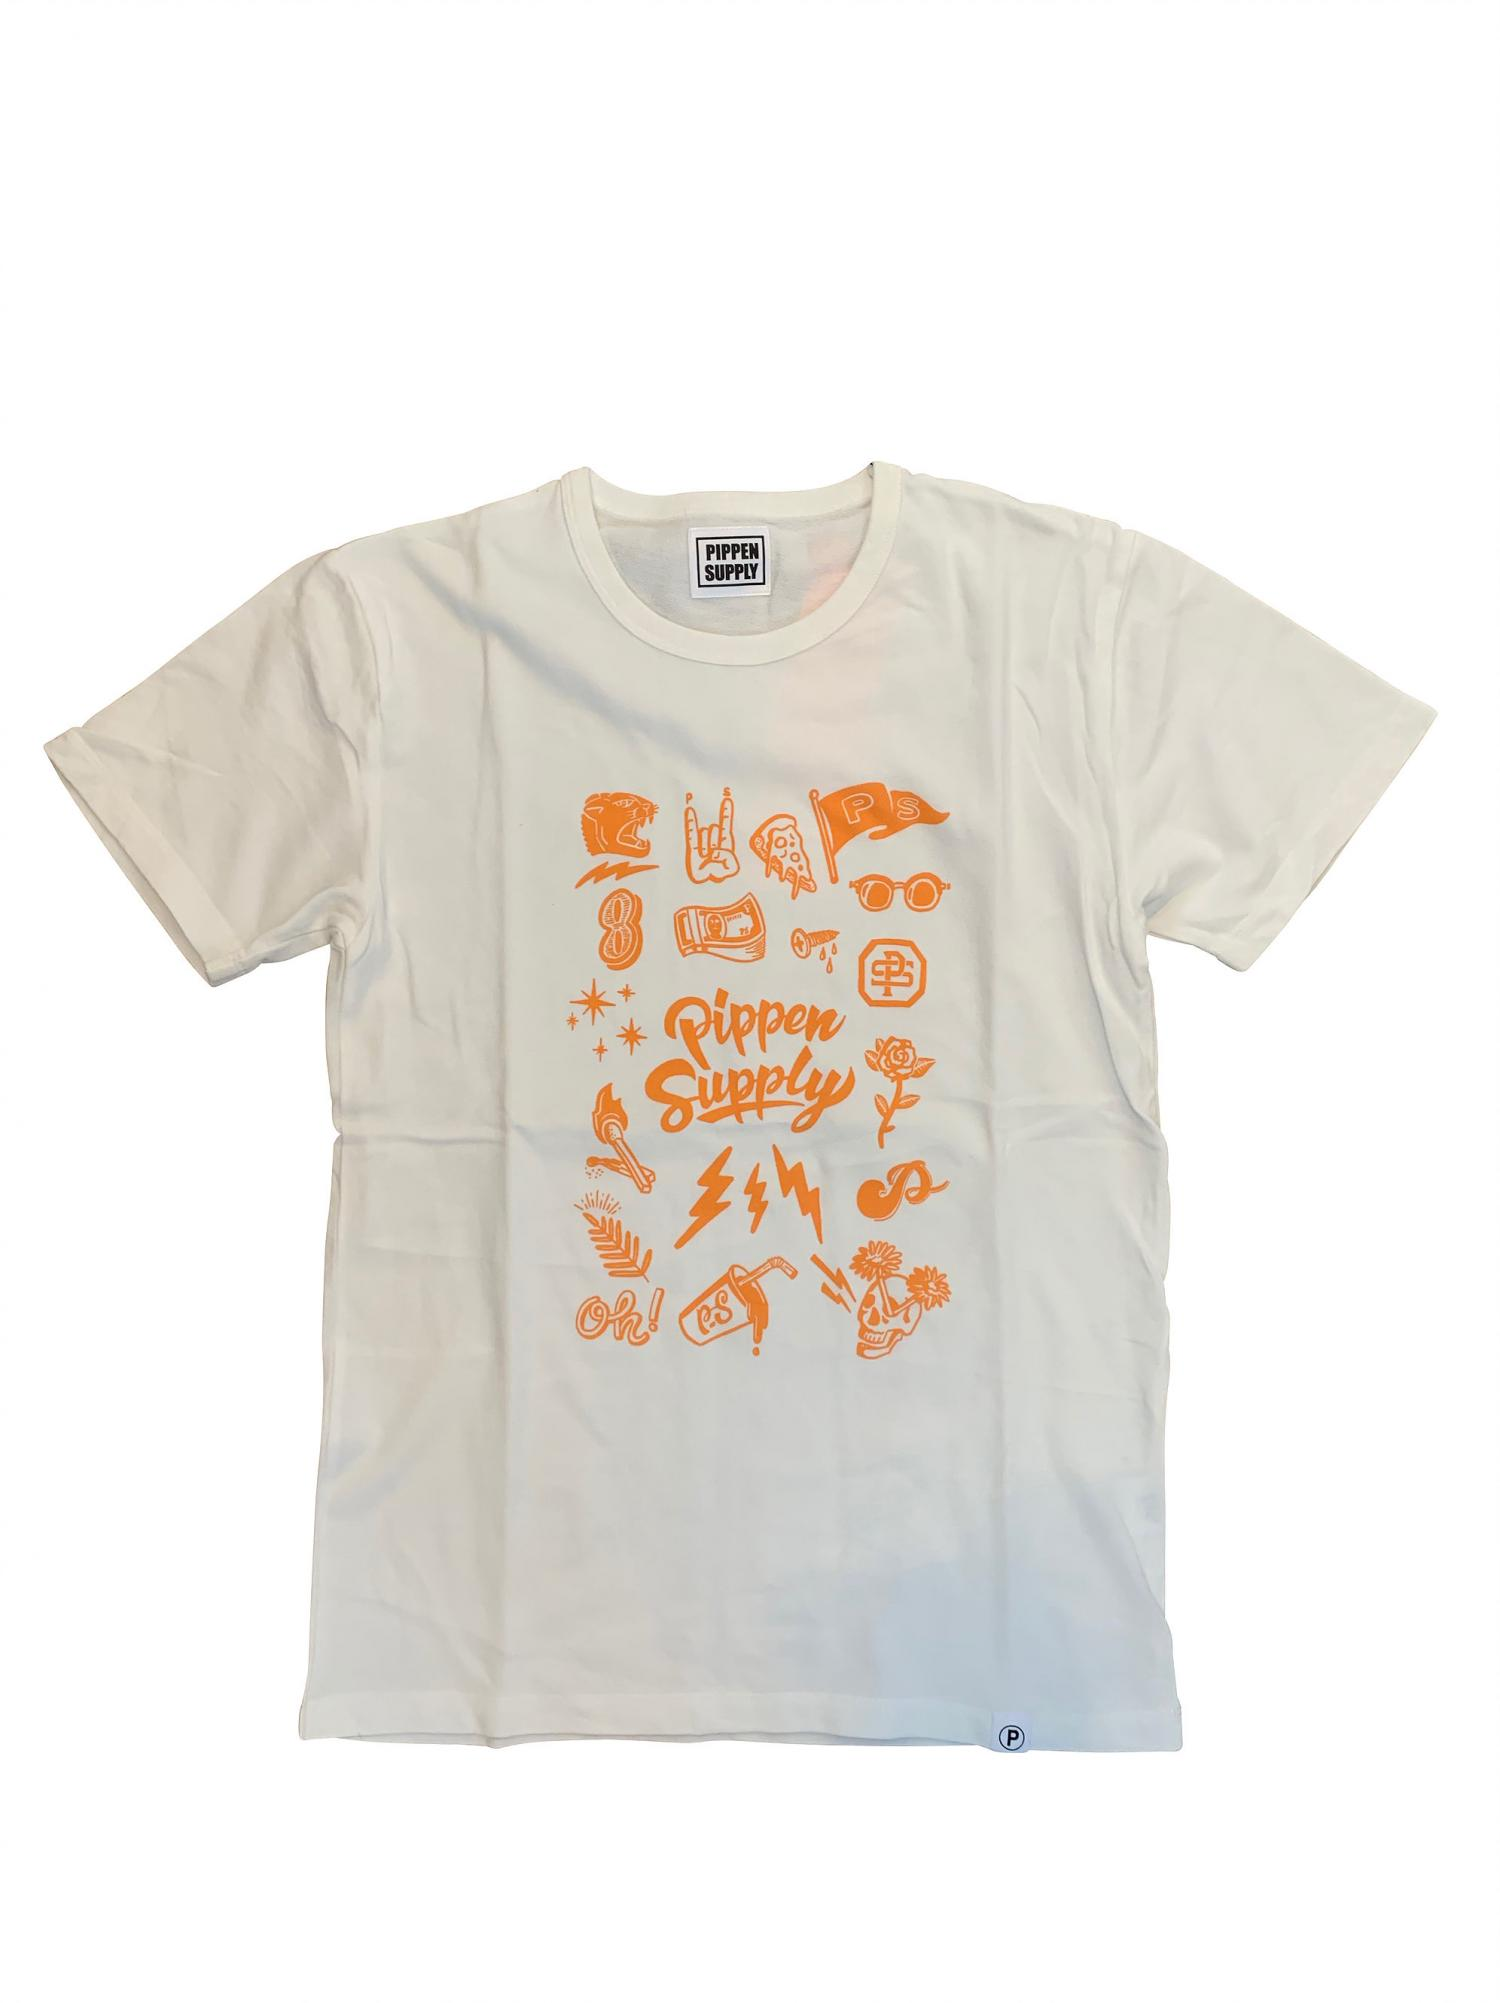 P SUPPLY. ARTIST Collaboration TEE  -GRAPHIC TEE-